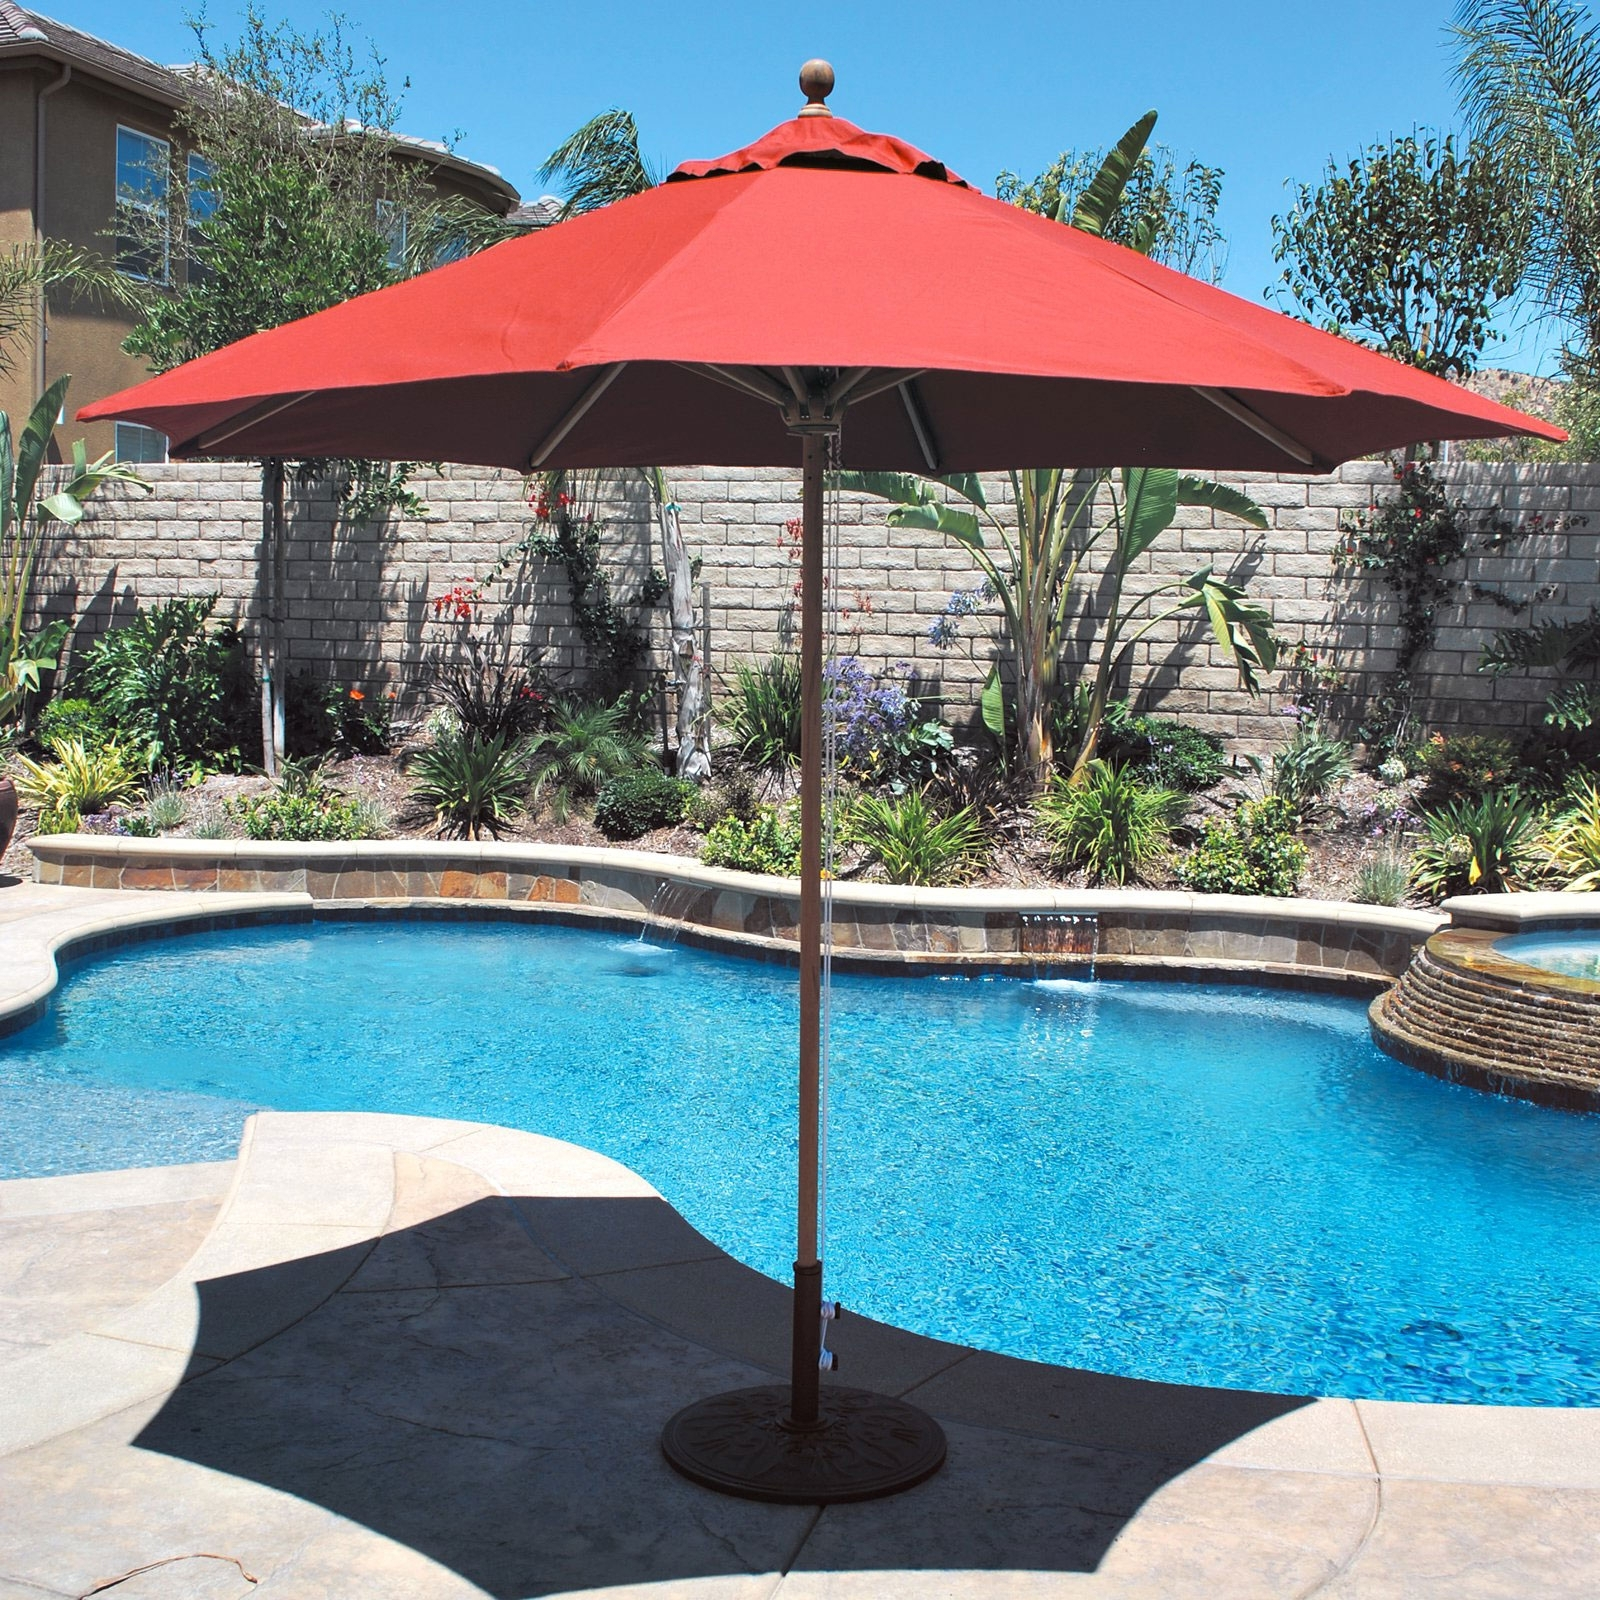 Fashionable Famed Sunbrella Commercial Grade Aluminum Wind Resistant Patio Inside Free Standing Patio Umbrellas (View 10 of 20)